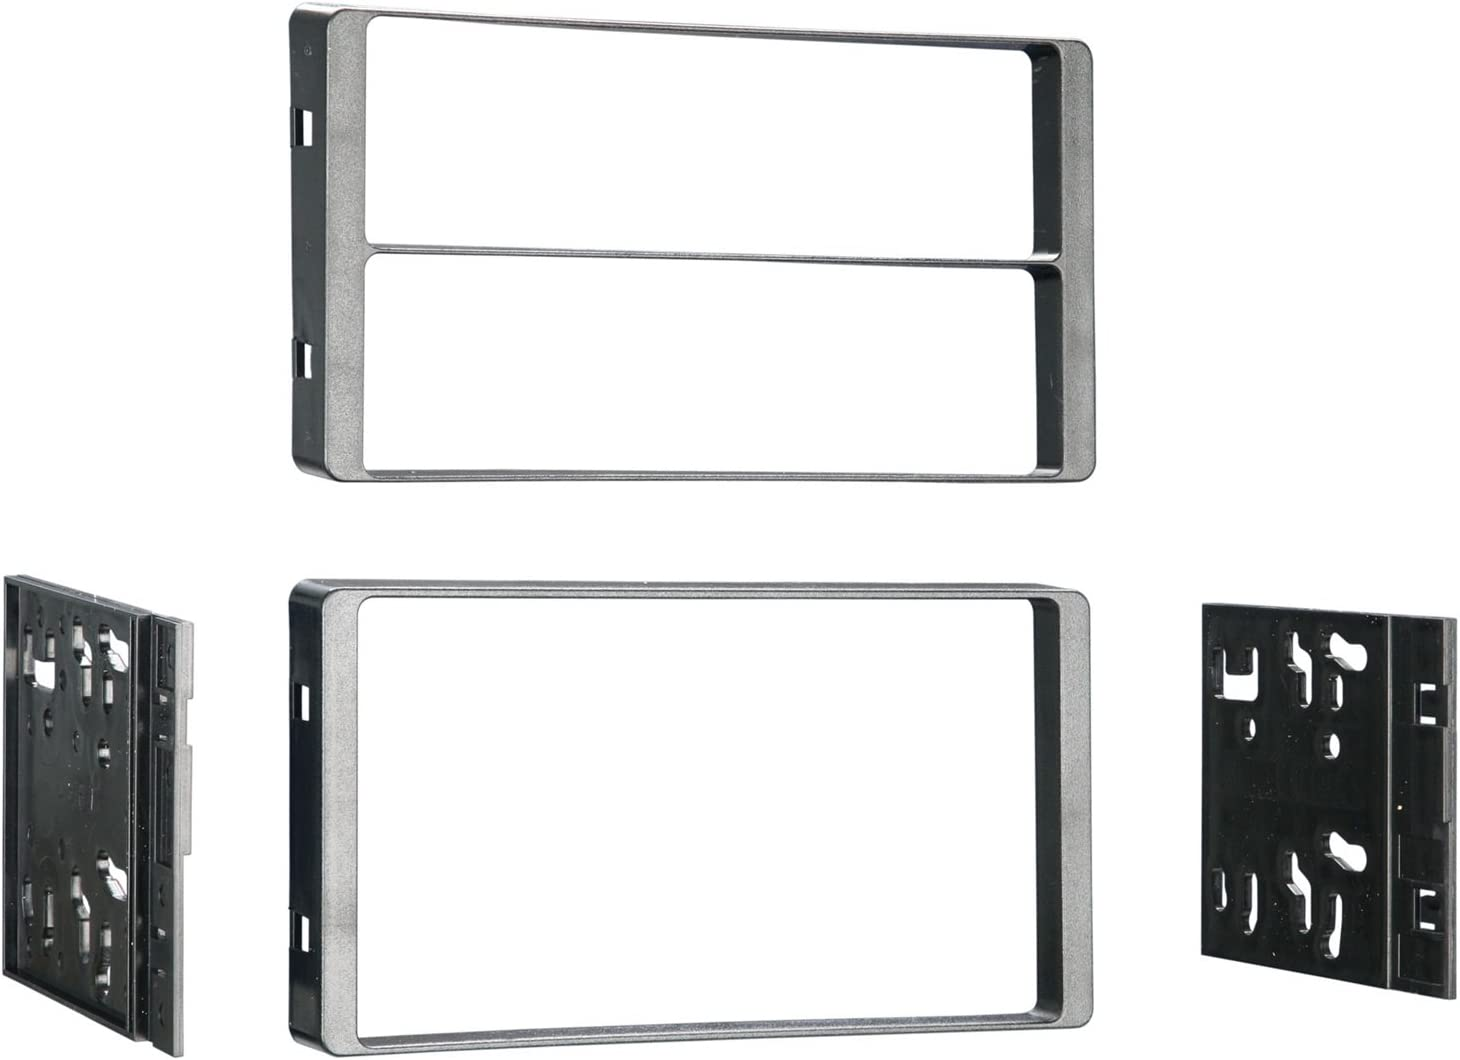 Metra 95-5600 Double DIN Installation Kit for select 1995-2008 Ford/Mazda/Mercury Vehicles